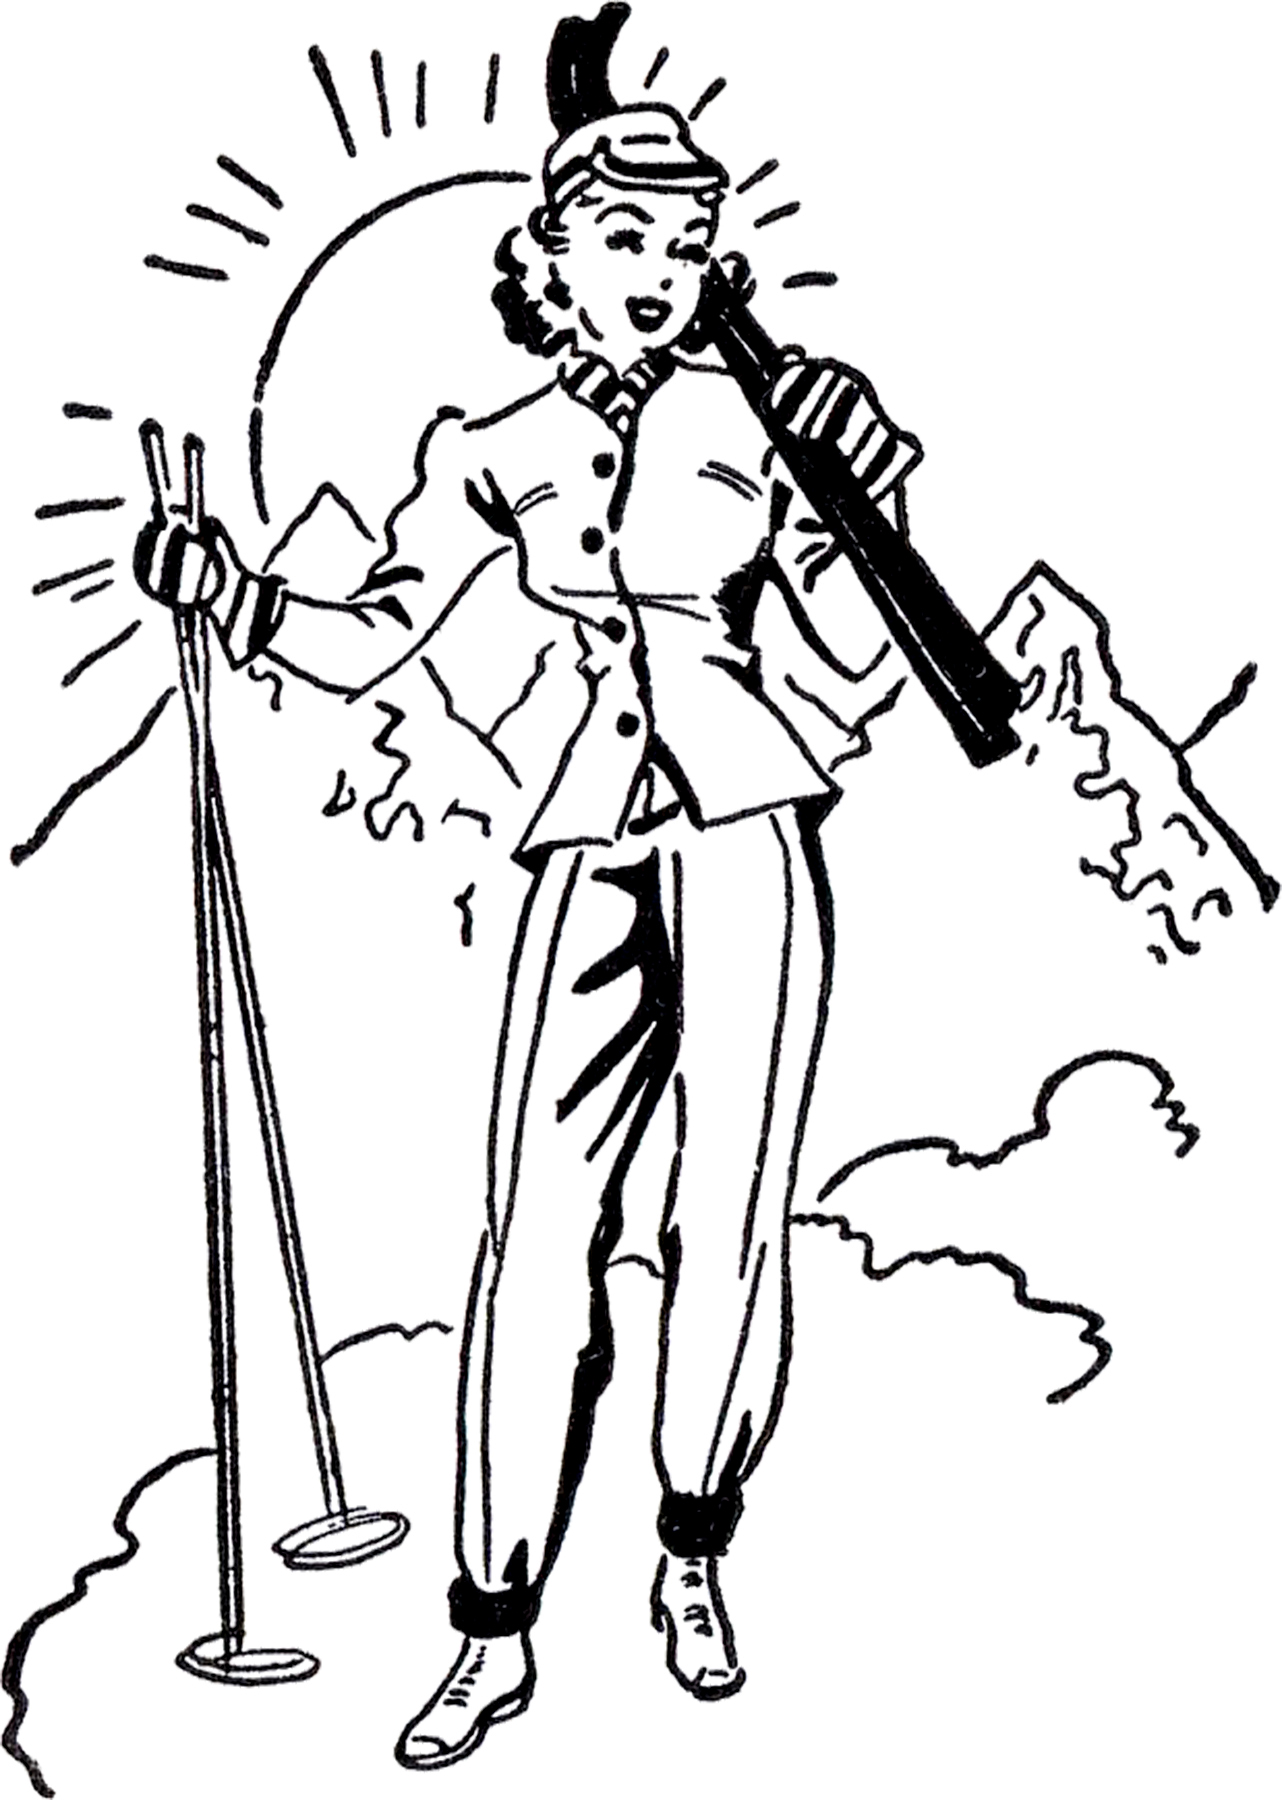 Vintage ski clipart png free download Retro Ski Lady Image! - The Graphics Fairy png free download